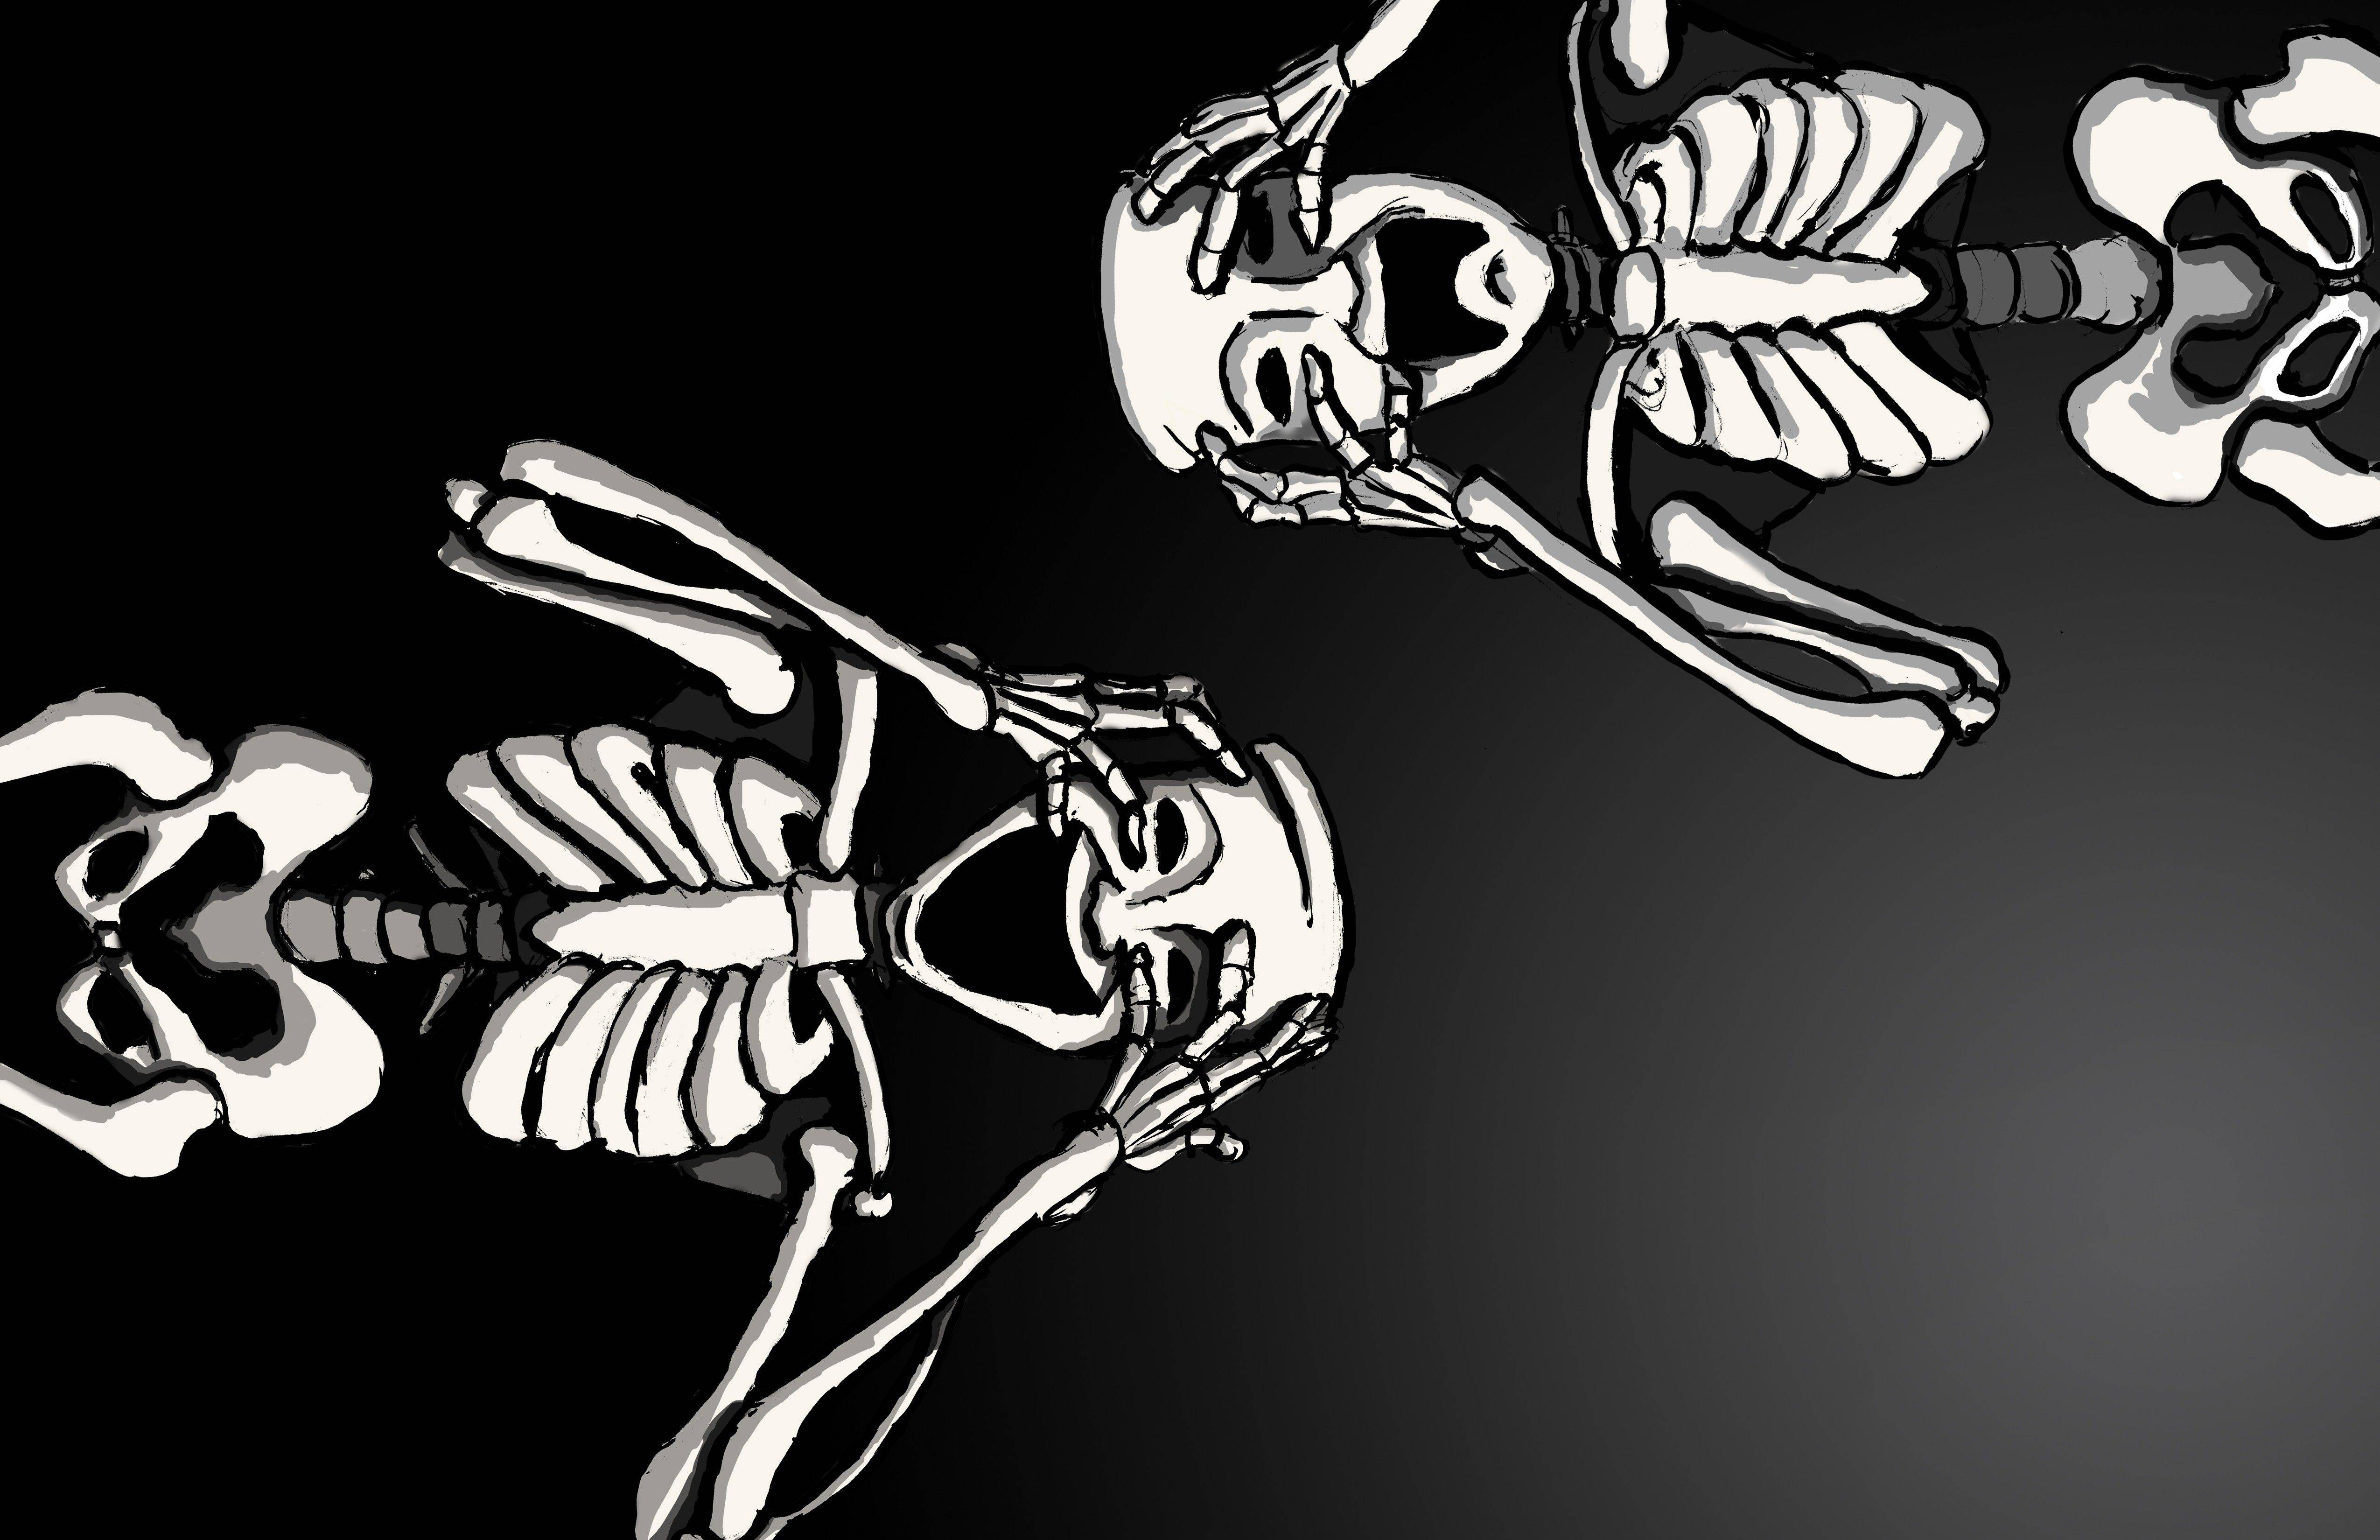 Popular Wallpaper Halloween Skeleton - FKCjRb2  Image_213287.jpg